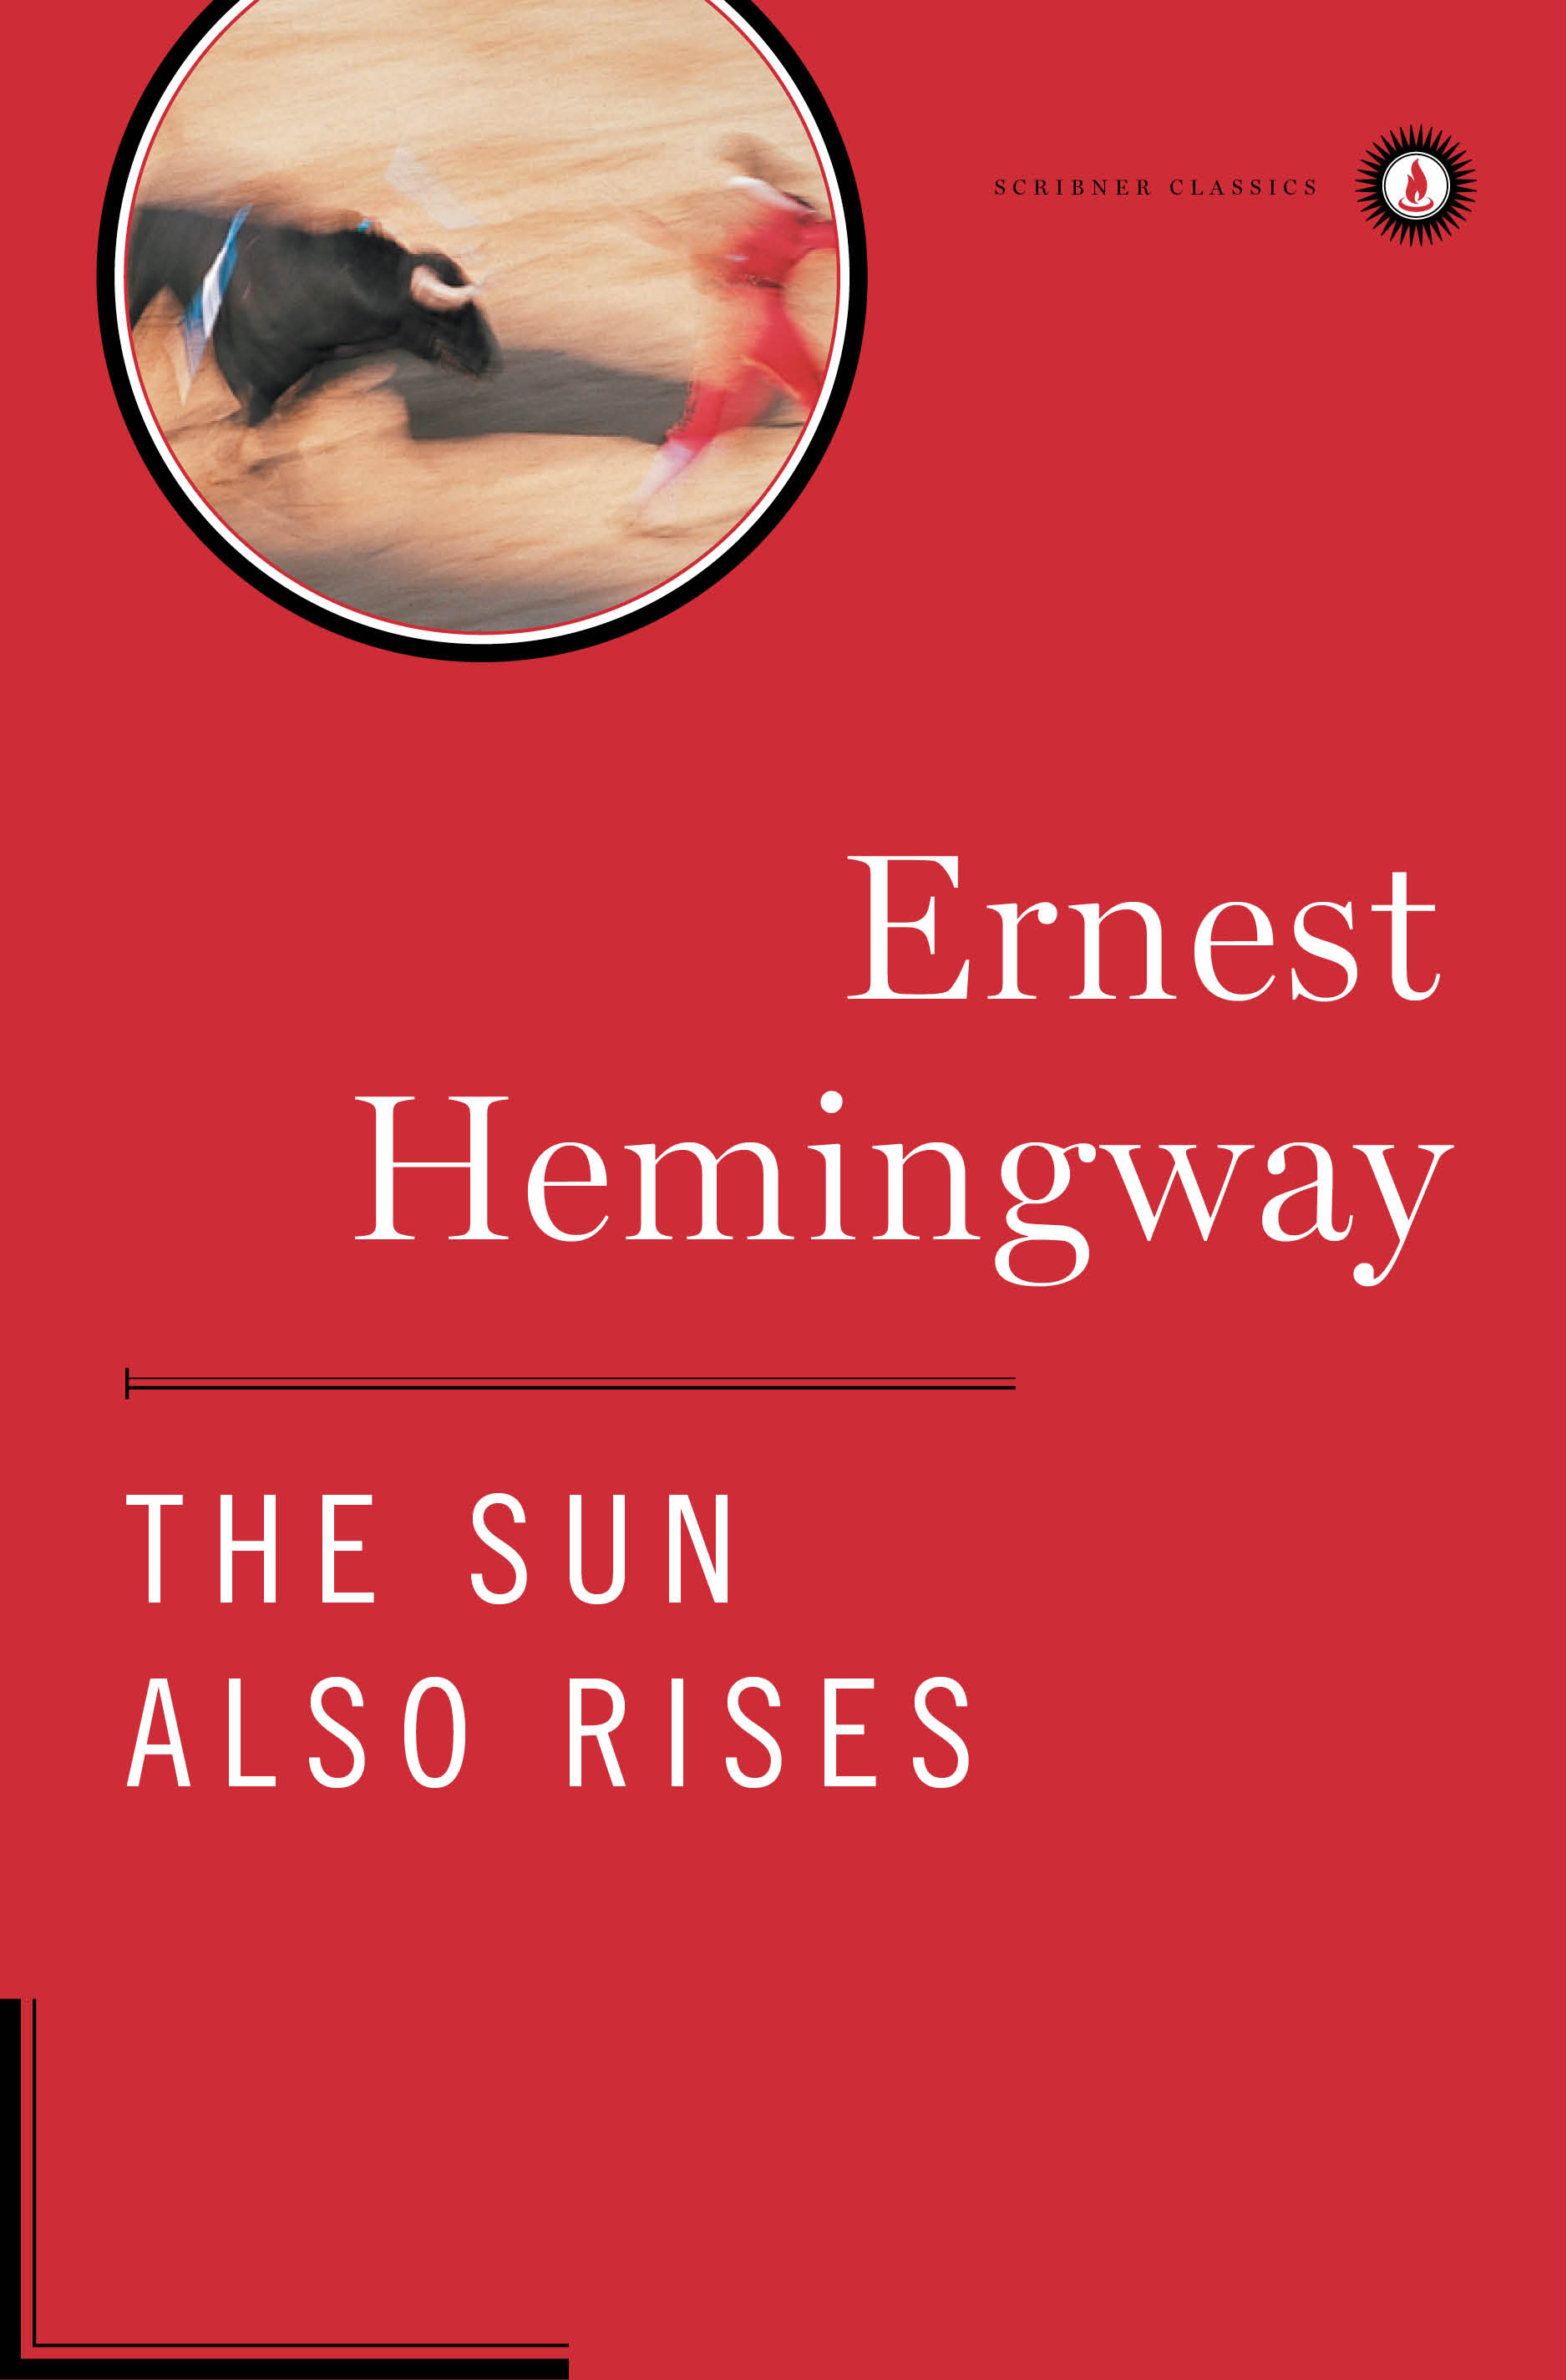 the sun also rises essay lost generation Ernest hemingway believes the generation that came of age after world war i is a lost generation this is apparent in the sun also rises, where his characters lack any direction, wasting their lives in a foreign land drinking, partying, and traveling as.